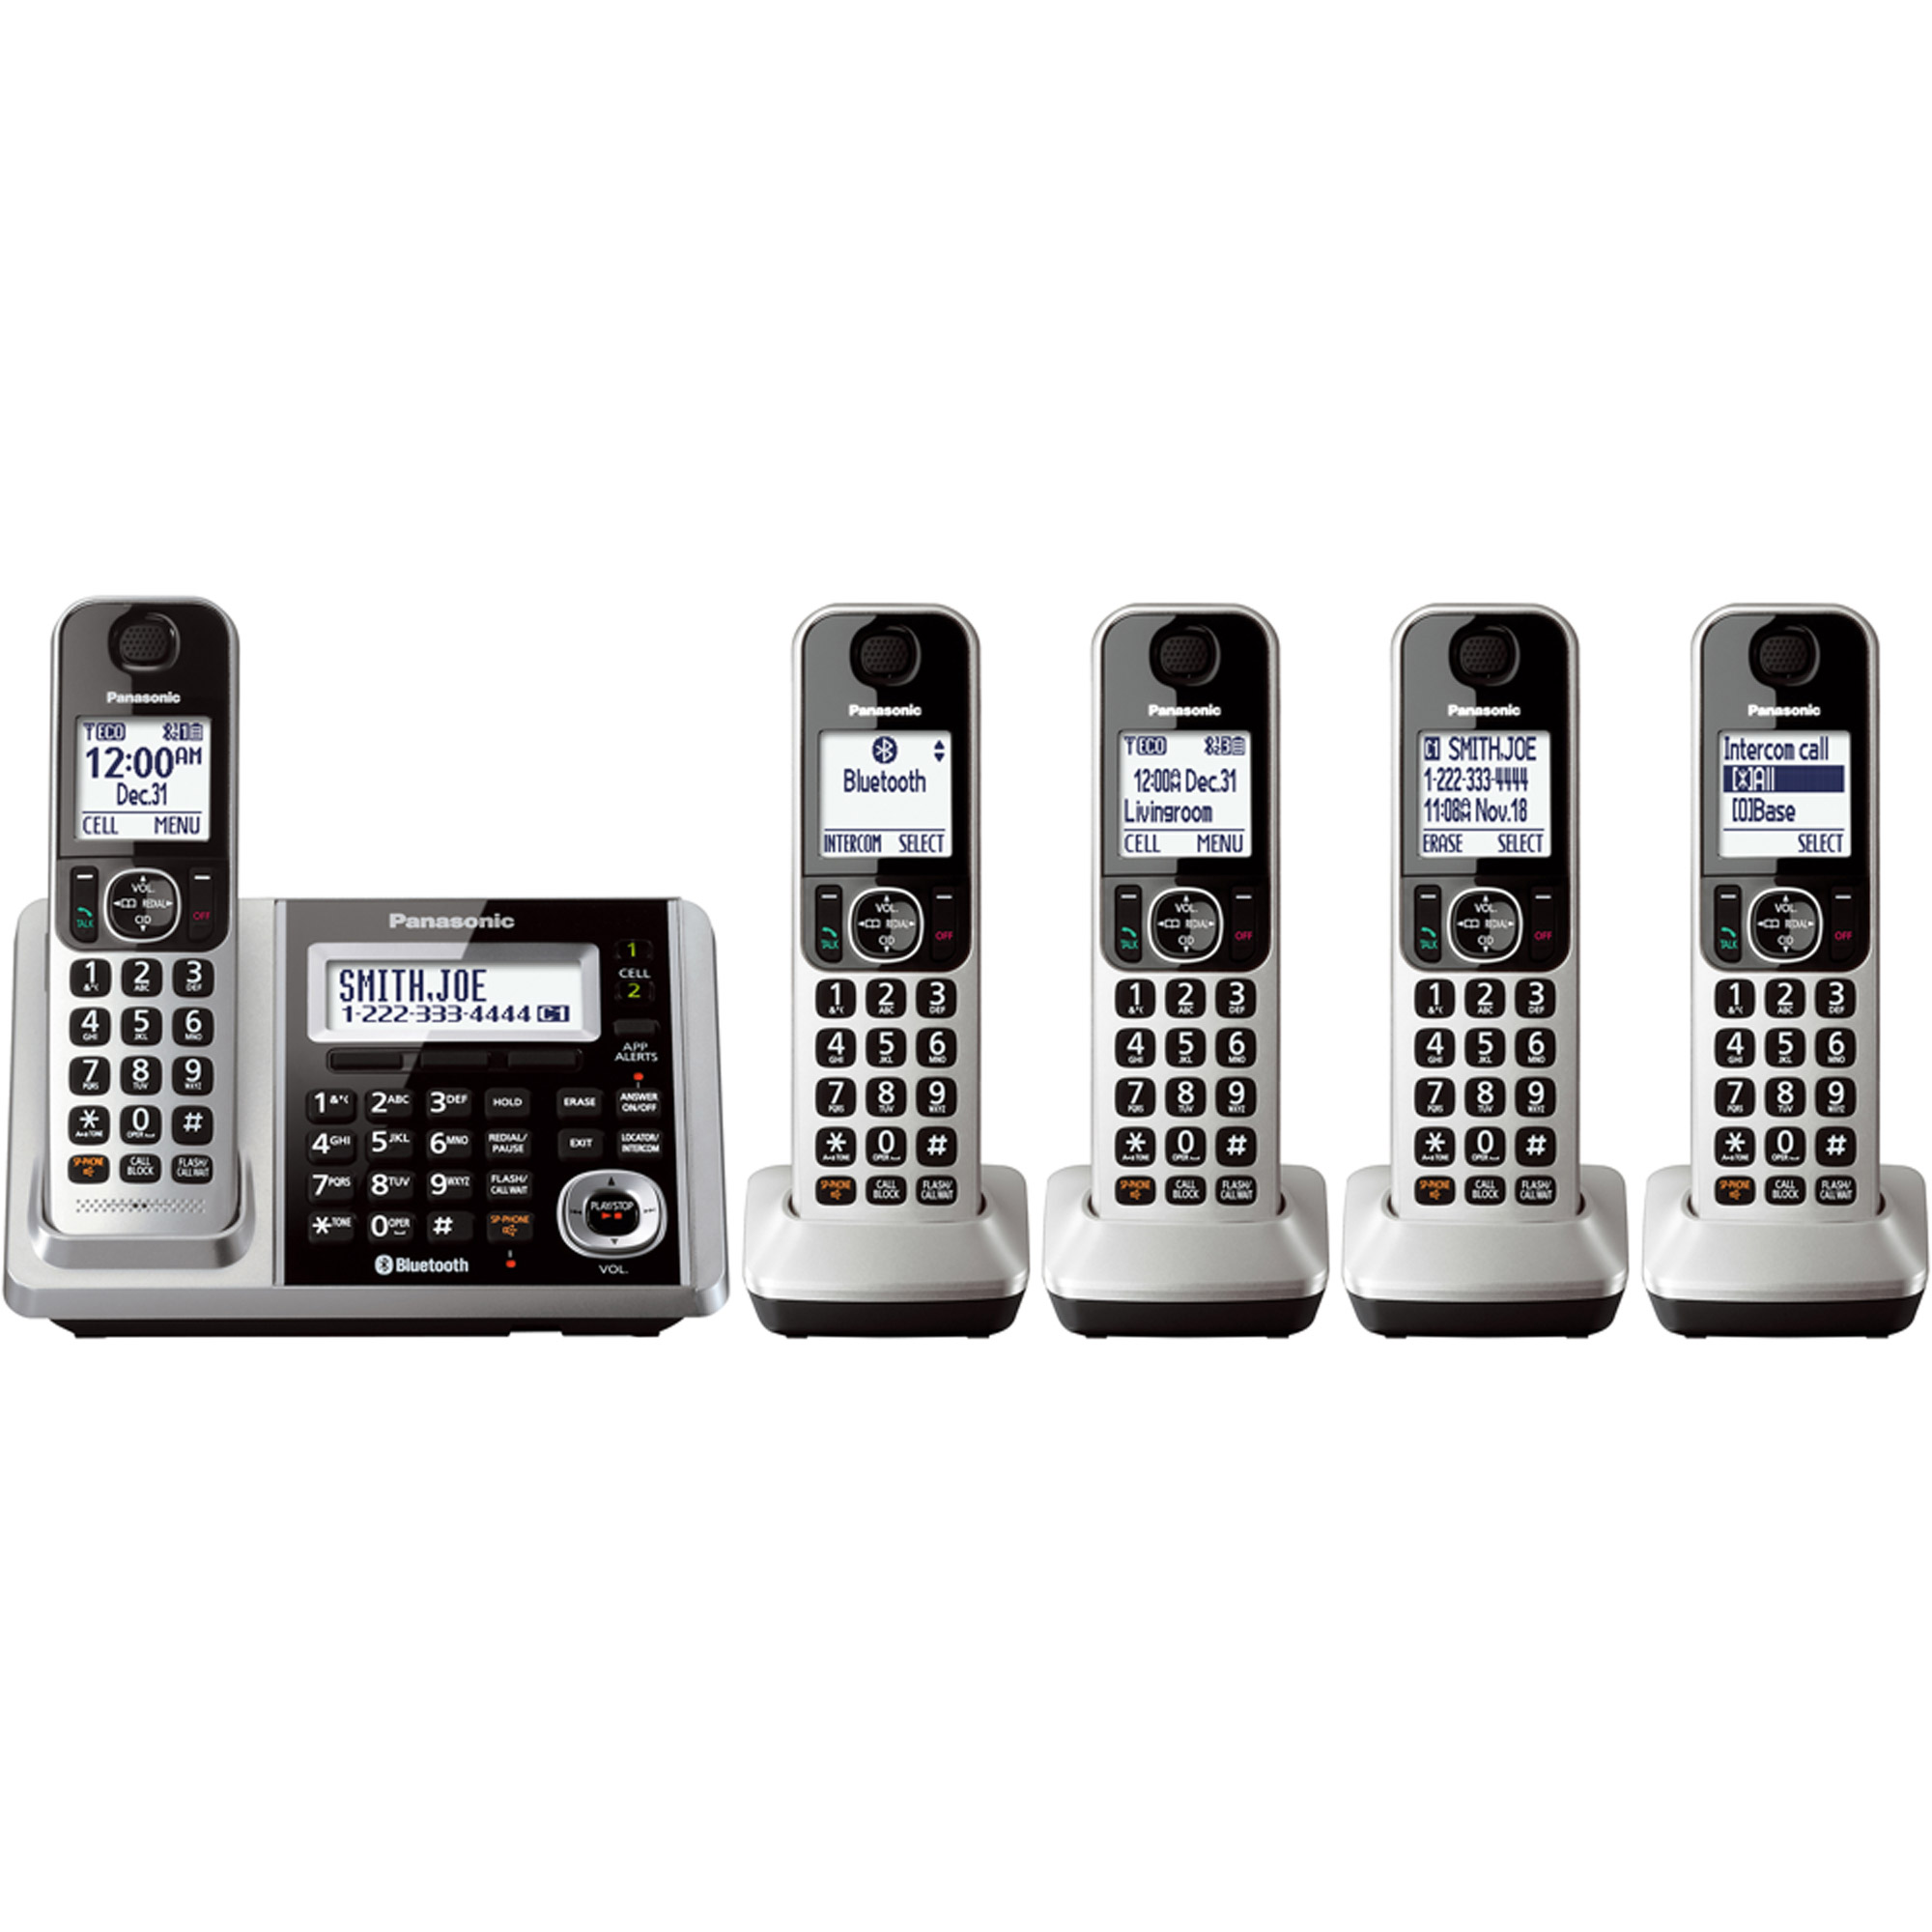 Panasonic Link2Cell Bluetooth Cordless Phone and Answering Machine with 5 Handsets by Panasonic